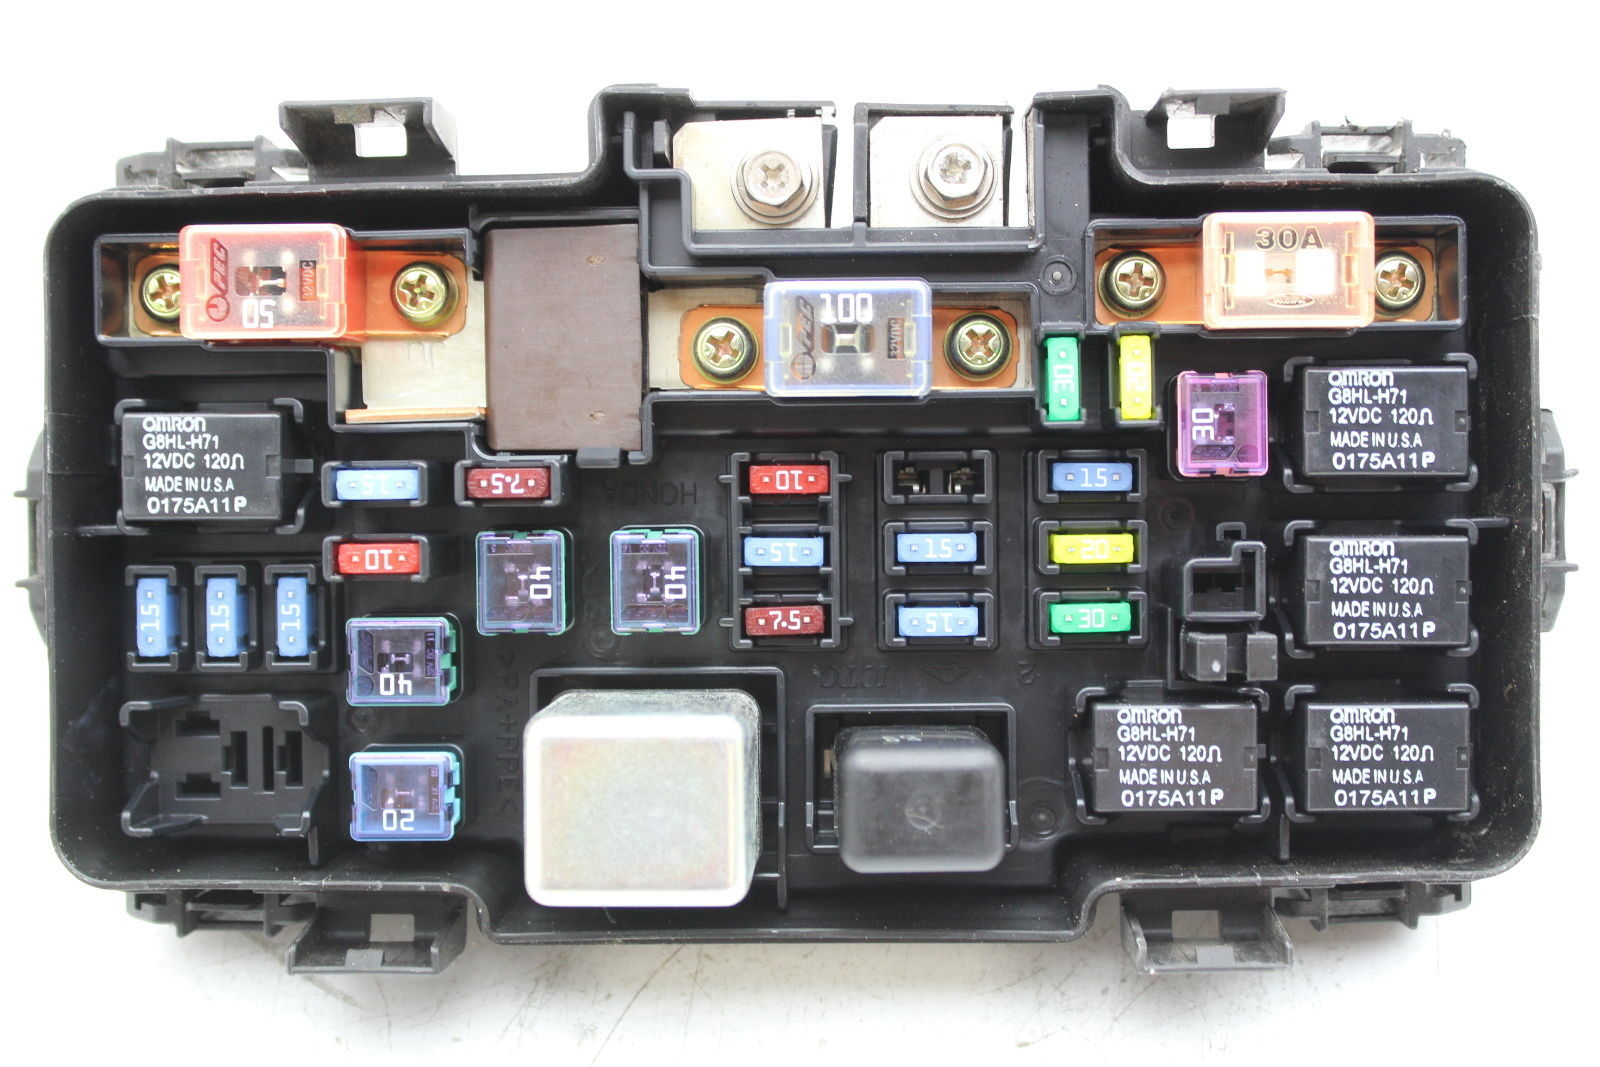 2004 Honda Element Fuse Box Wiring Library 2003 Diagram Image Details 03 11 Scv V1 Fusebox And Similar Items Problems